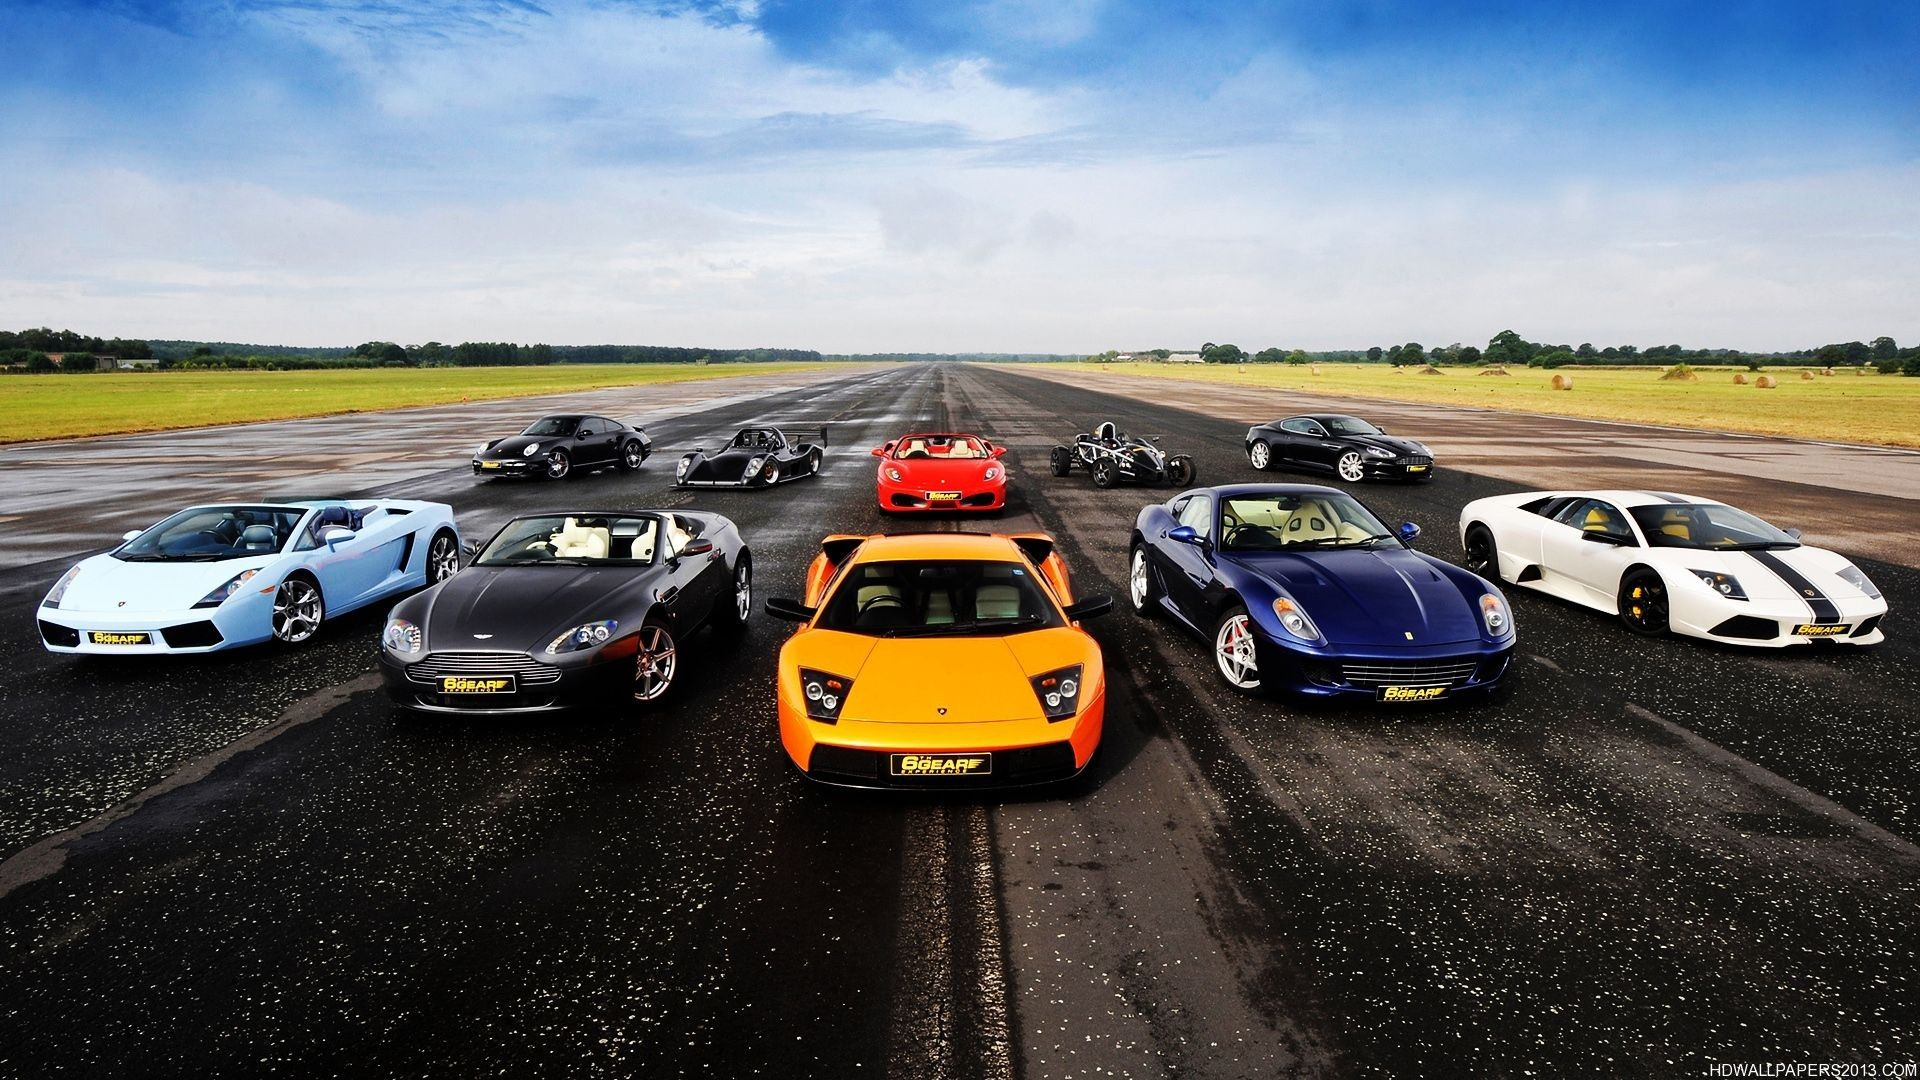 Top Gear Lineup Wallpaper 60469 Resolution 1920x1080 Px Sports Car Wallpaper New Sports Cars Hd Wallpapers Of Cars